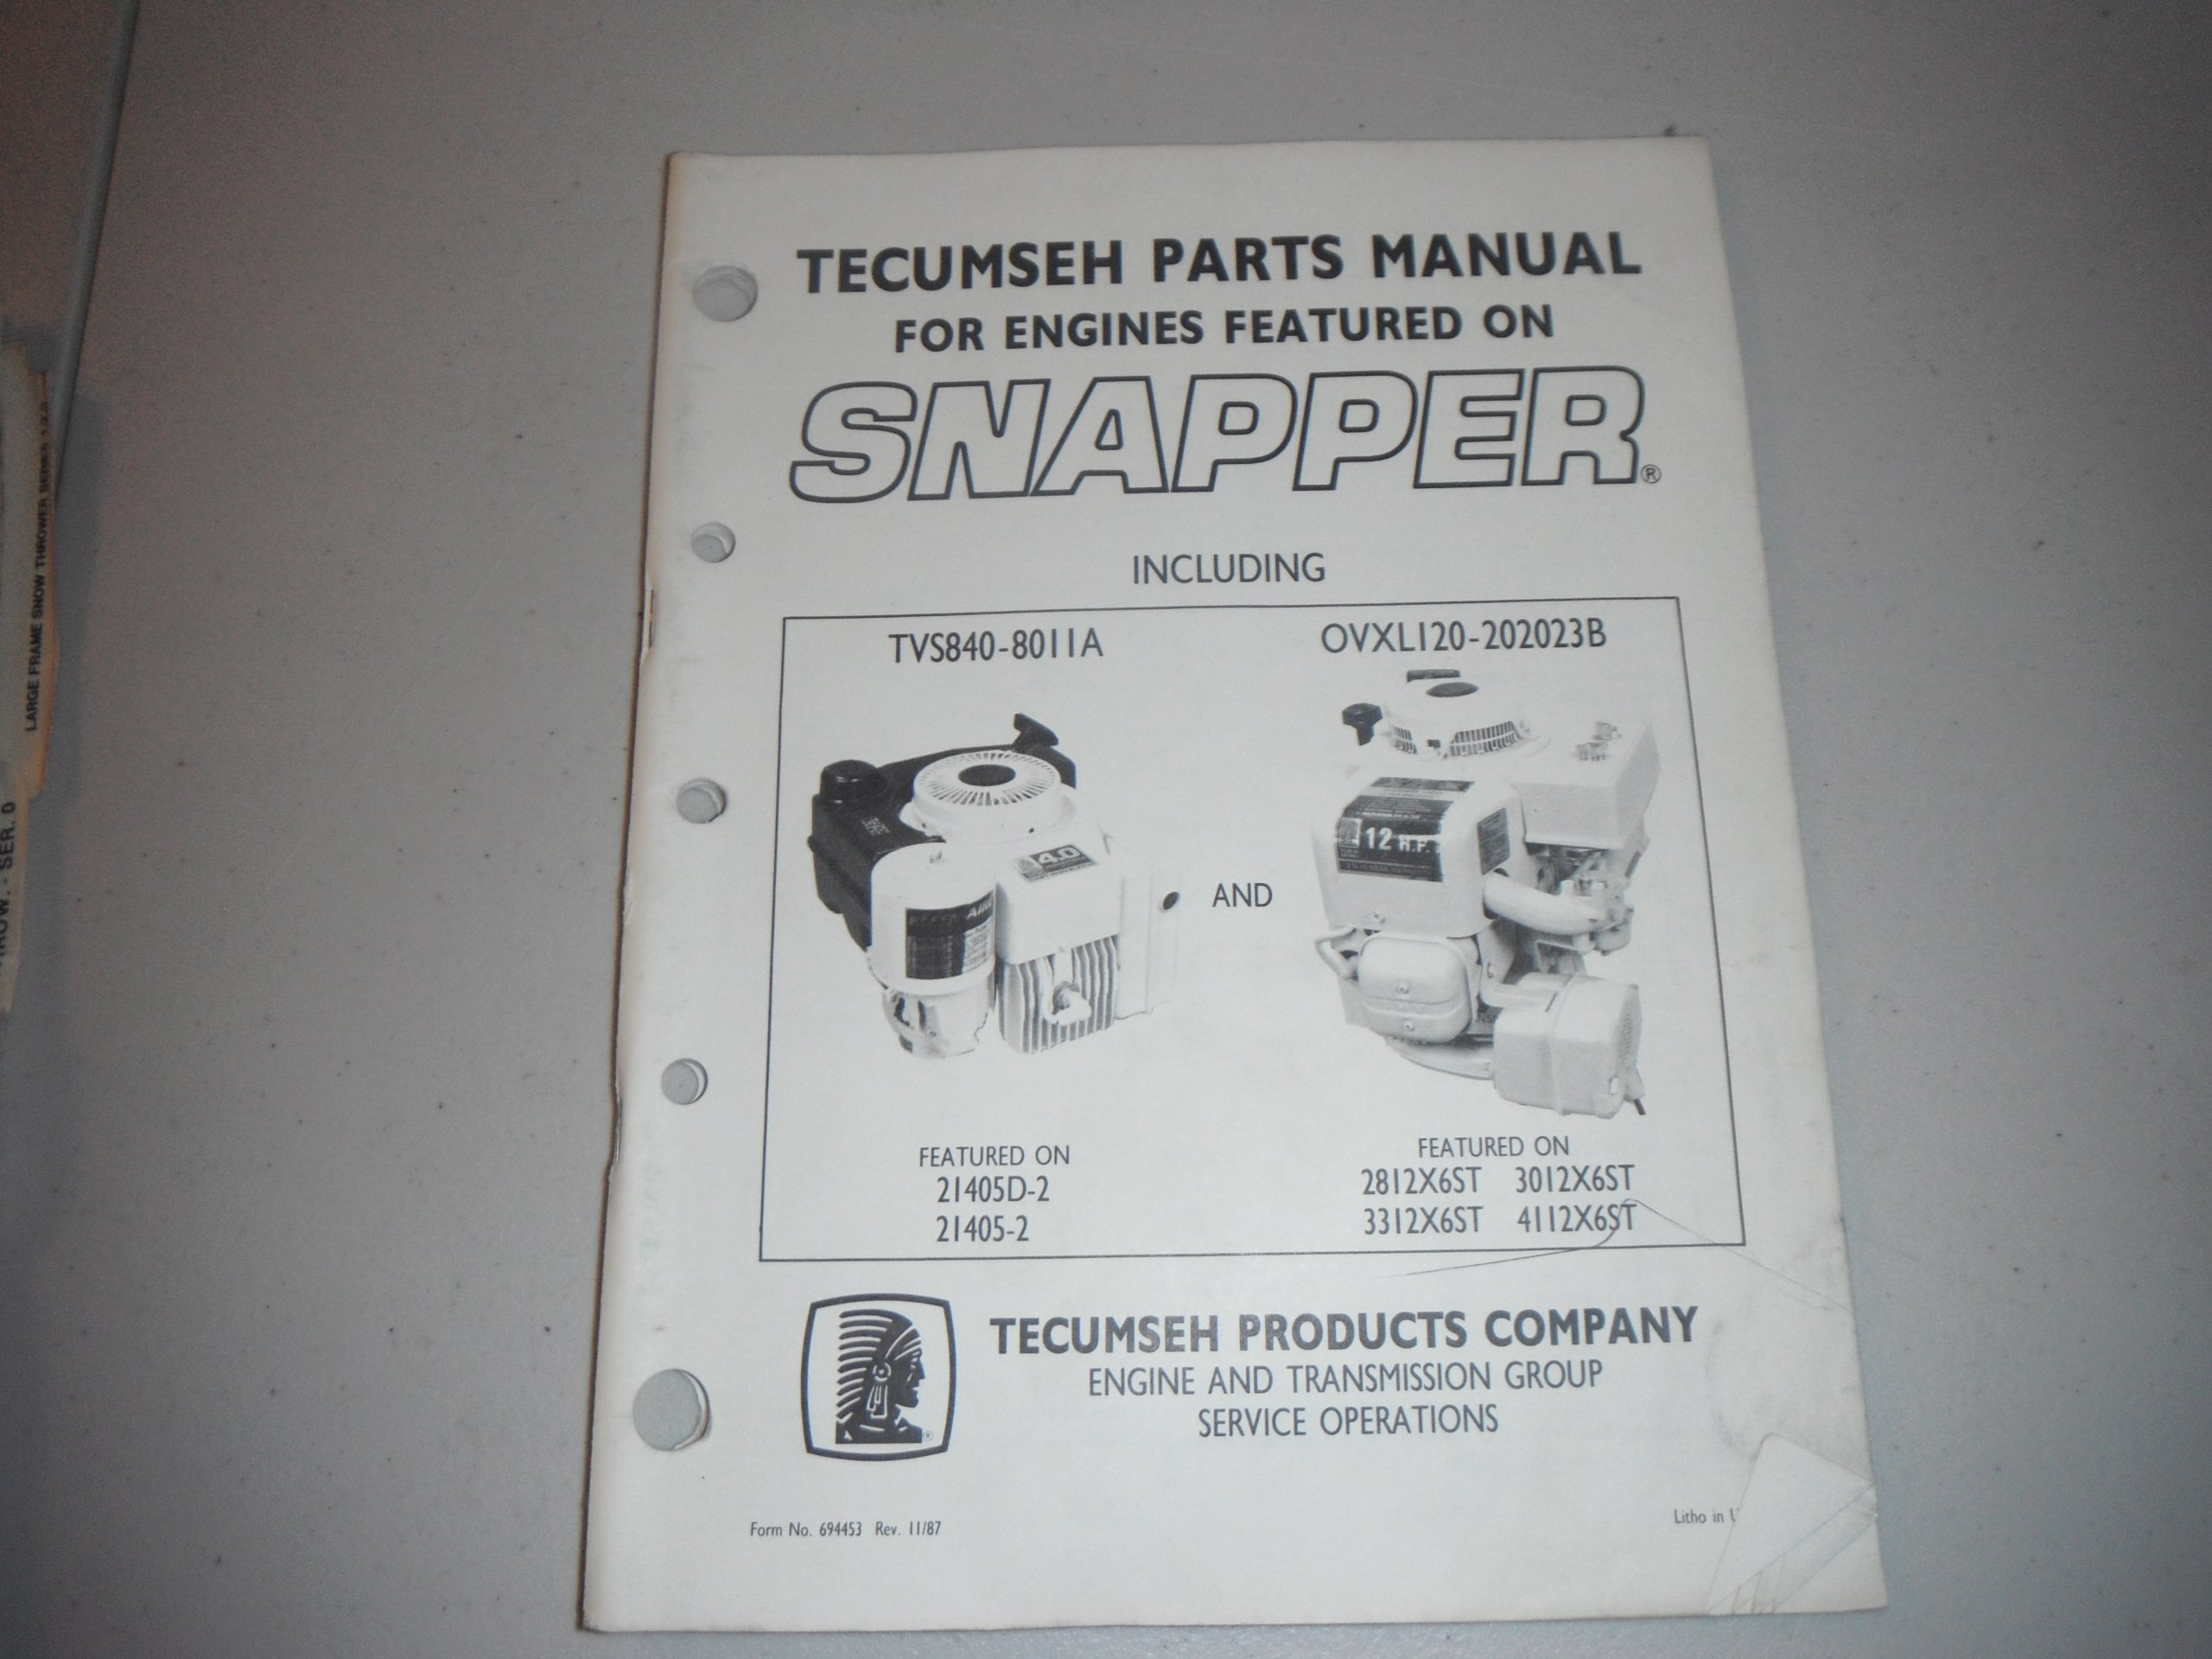 tecumseh parts manual for engines featured on SNAPPER mowers-1987